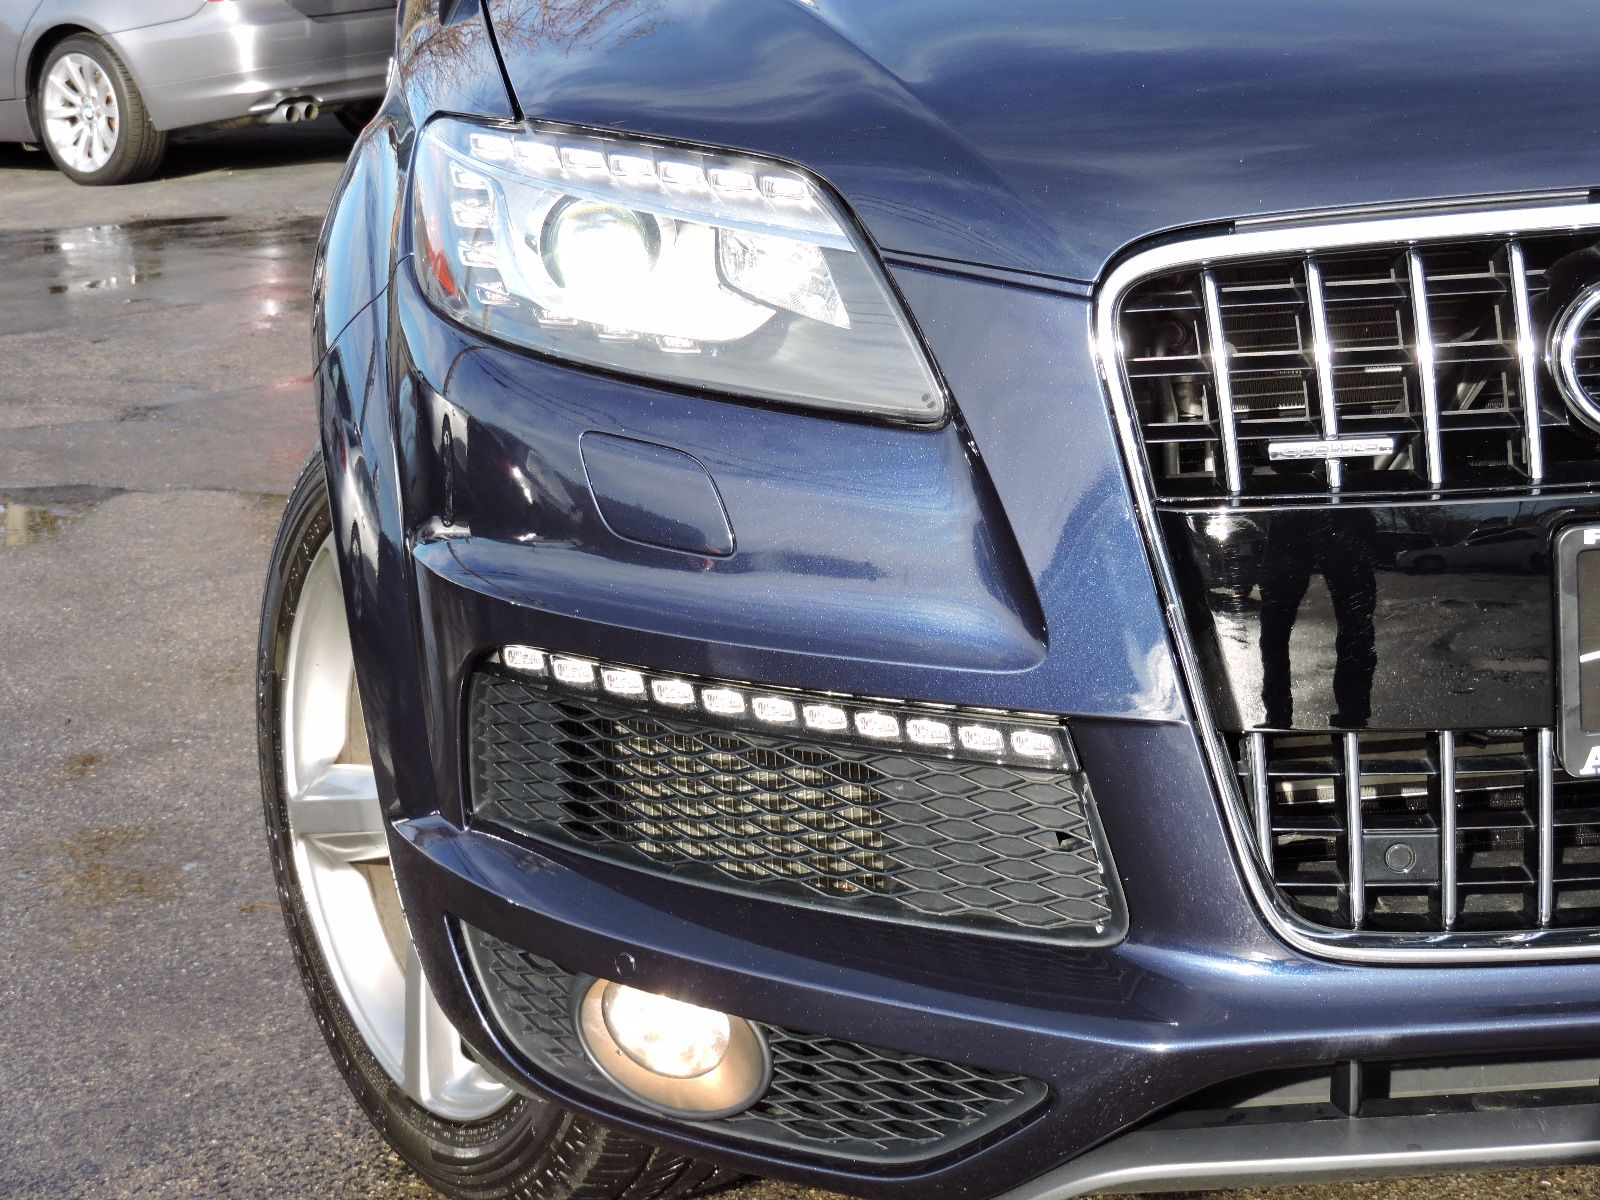 2014 Audi Q7 3.0 S-Line - Quattro - All Wheel Drive - Navigation